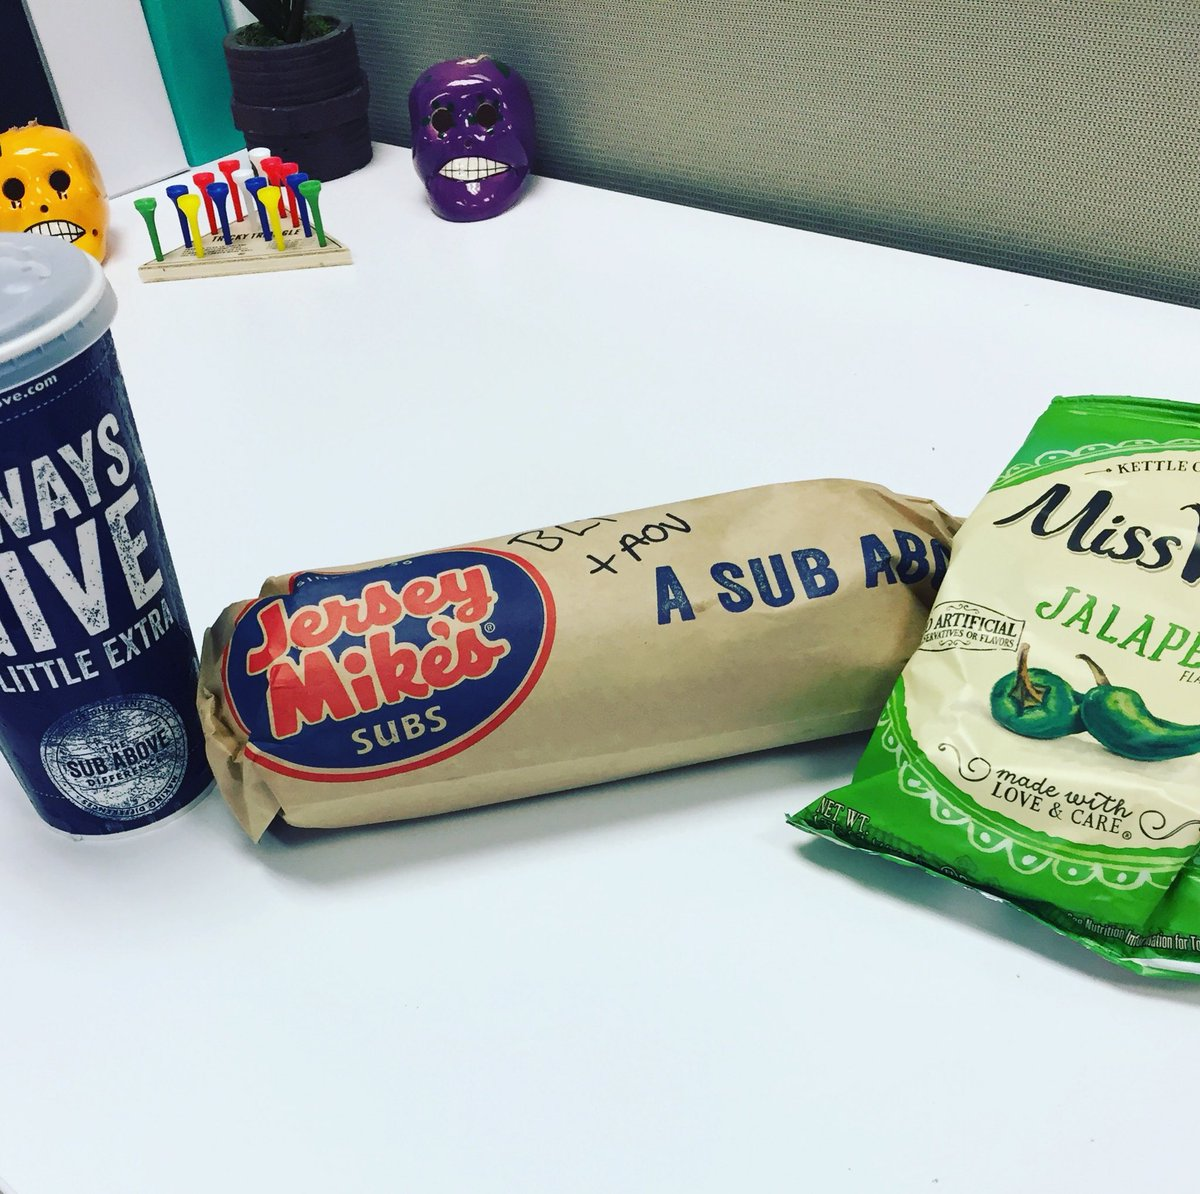 Gotta love when the office is jealous! @jerseymikes #lunch #getinmybelly https://t.co/MVk8LDiIDP